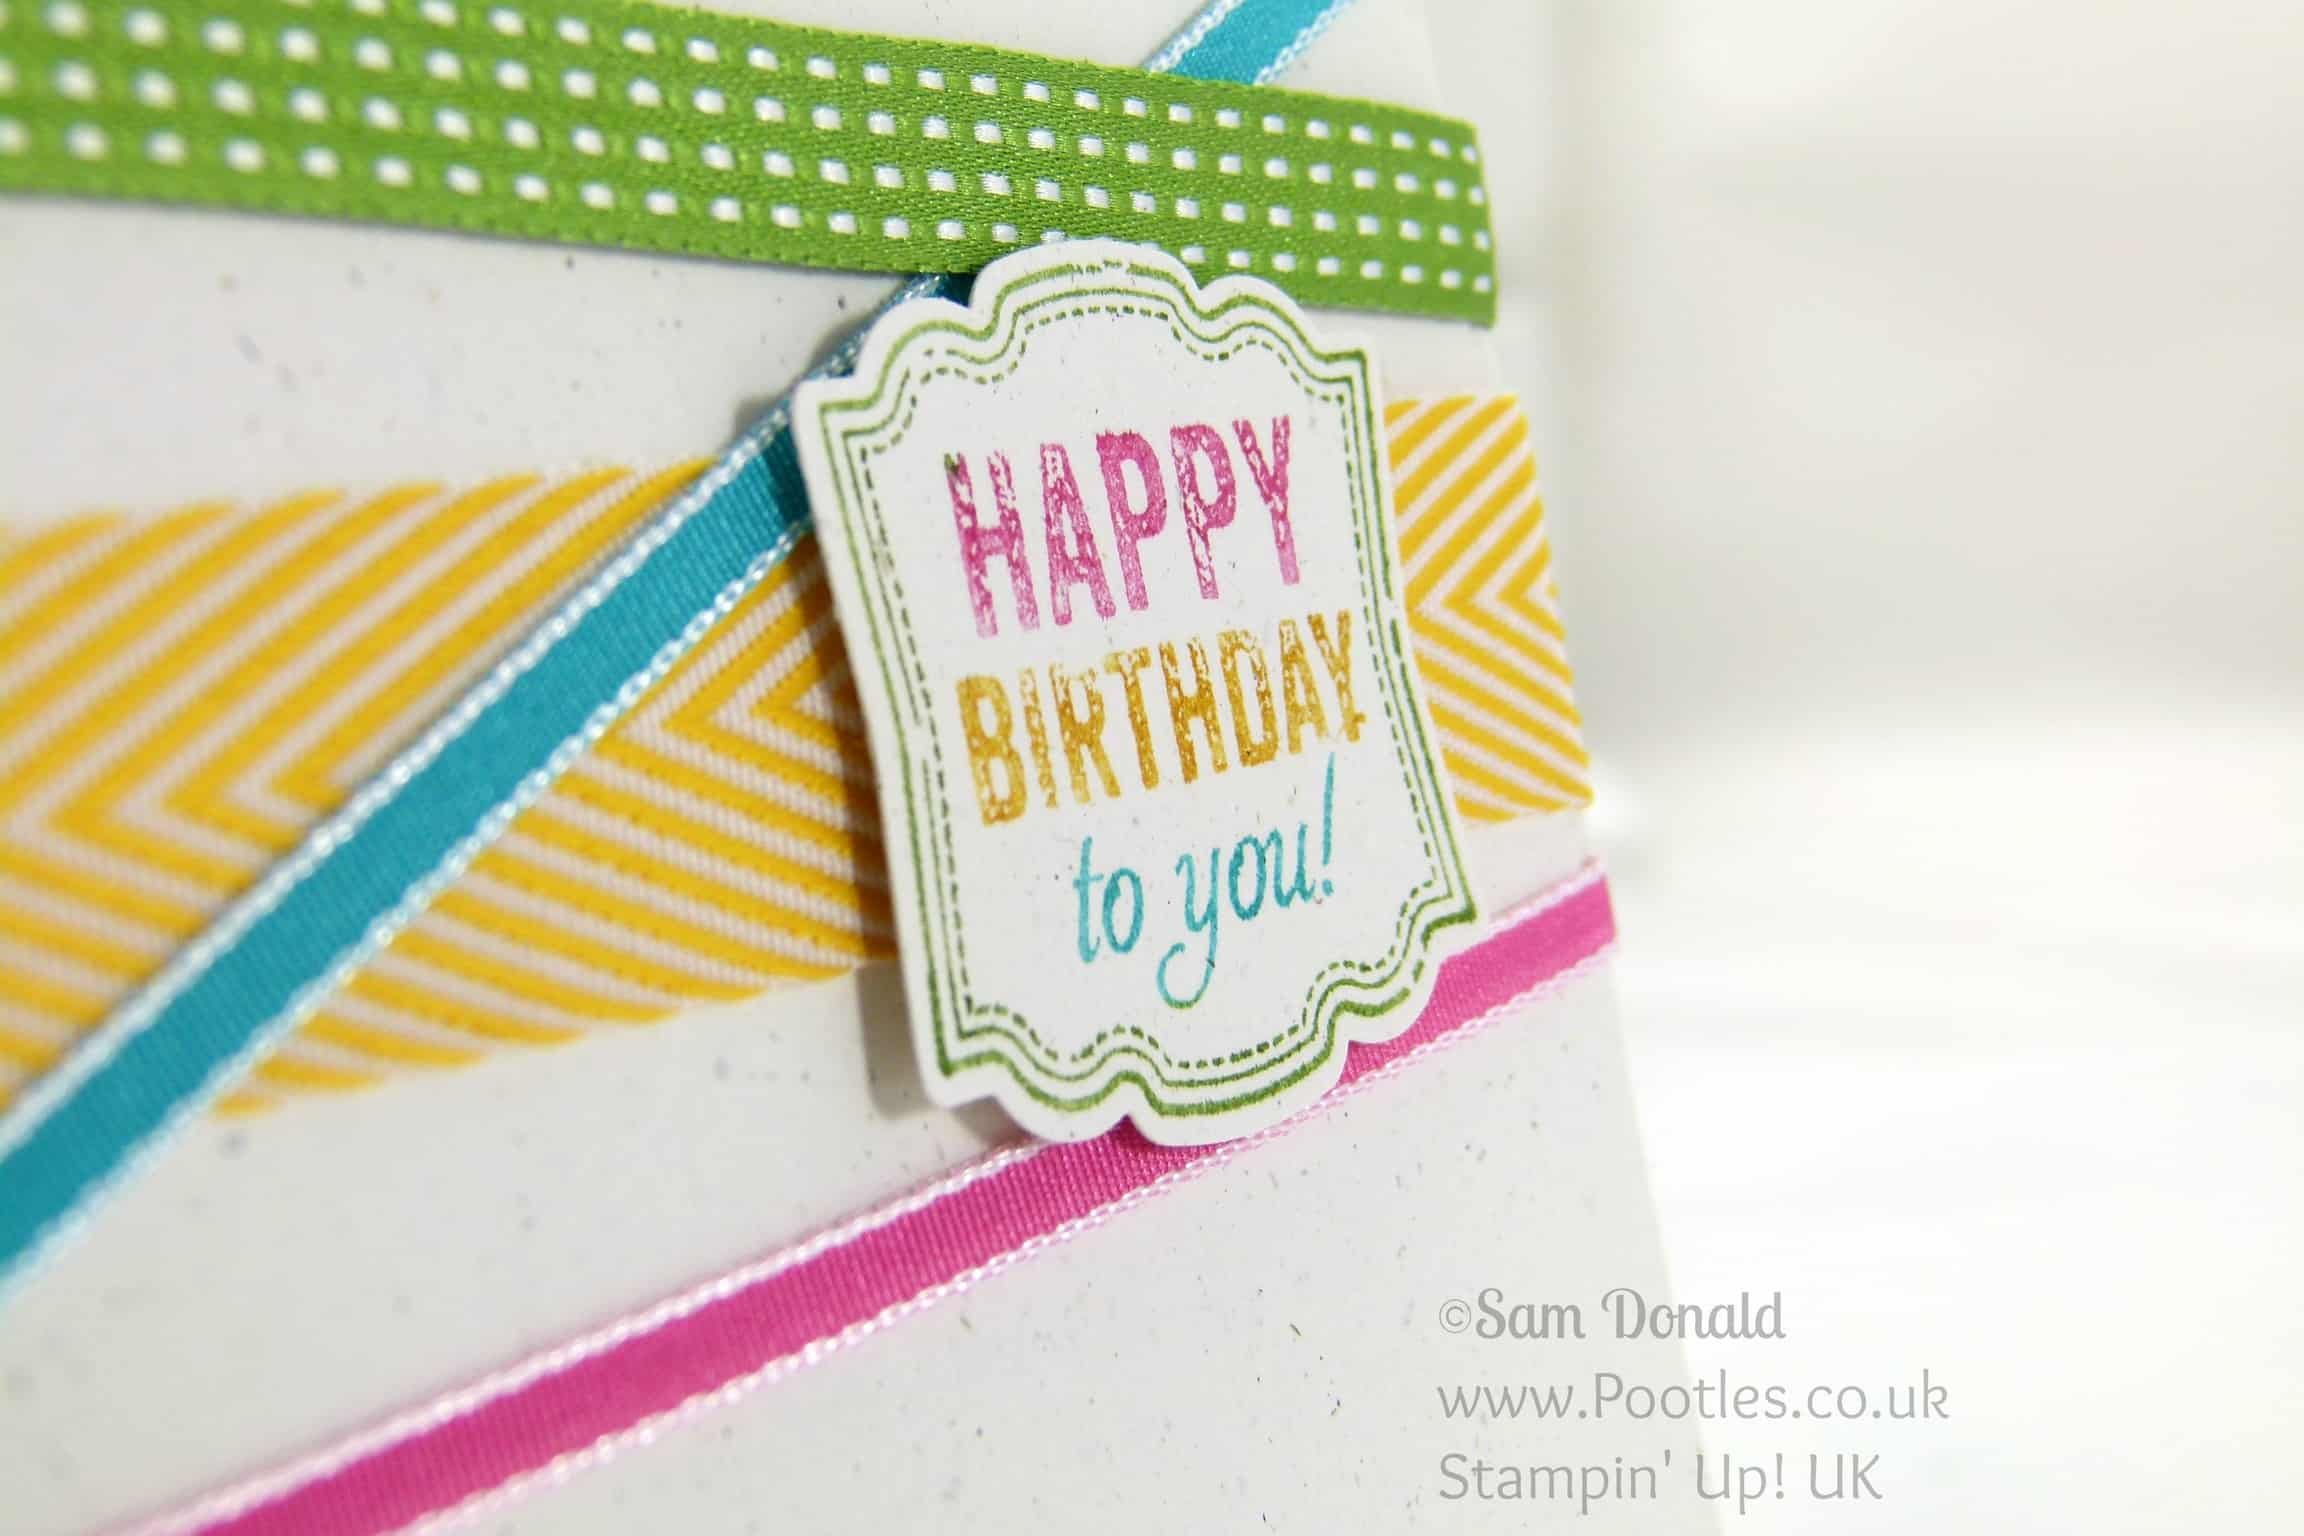 POOTLES Stampin' Up! UK Around the World Stampin' Up! Challenge Blog AW15 Marker Detail